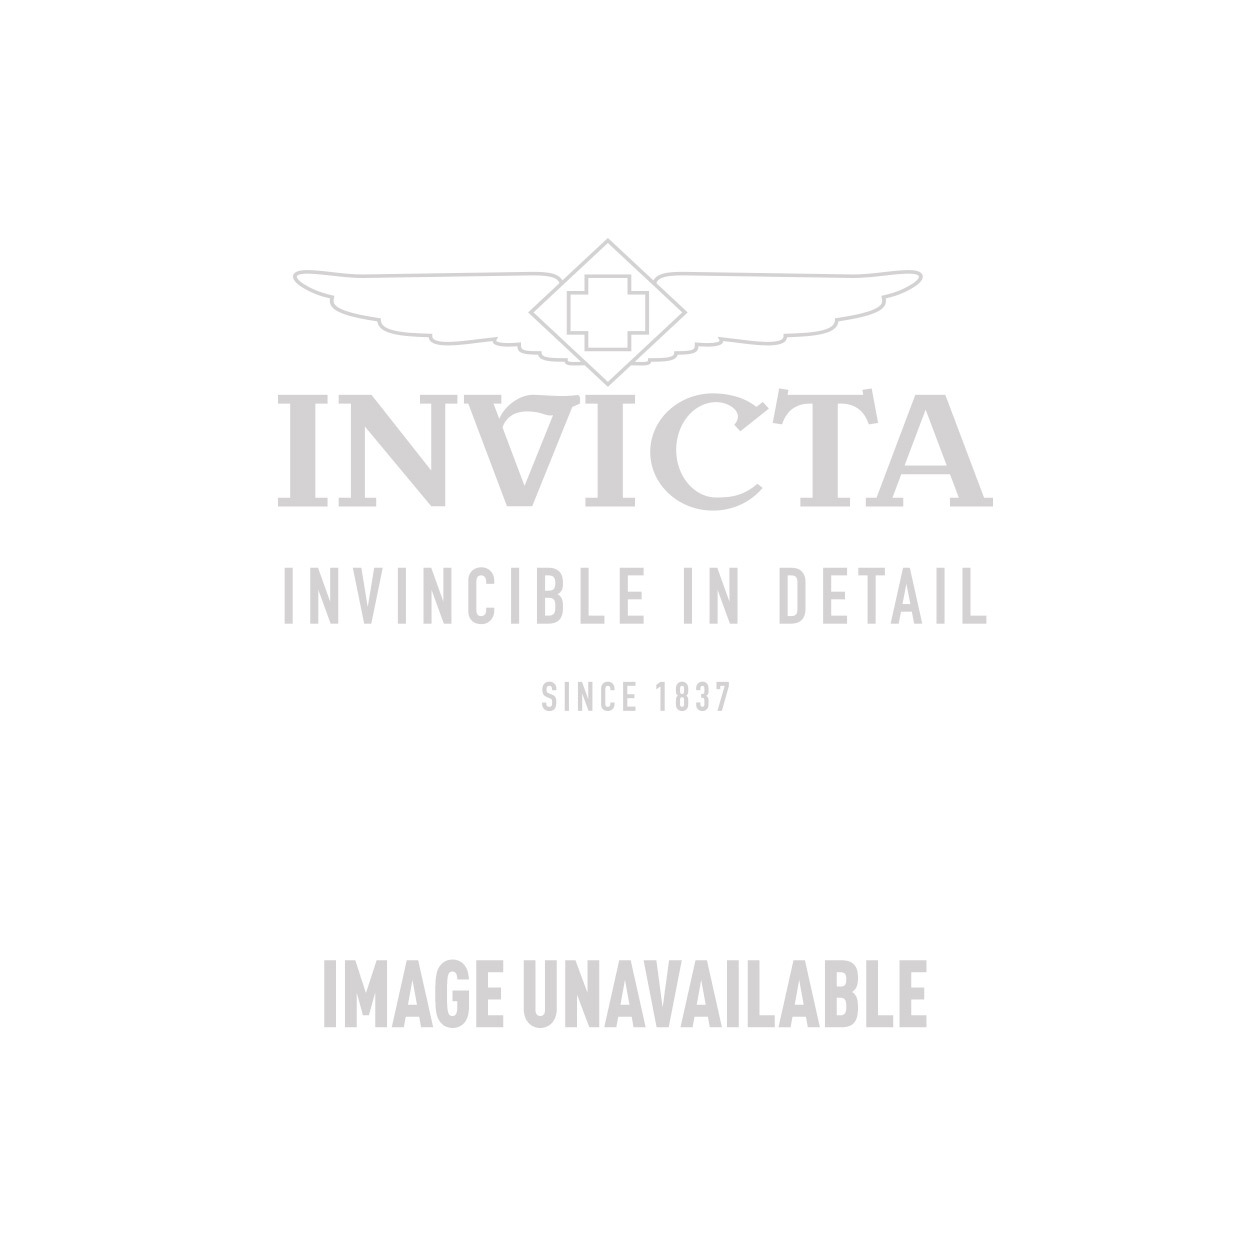 Invicta Speedway Quartz Watch - Black, Stainless Steel case with Black tone Leather band - Model 10707